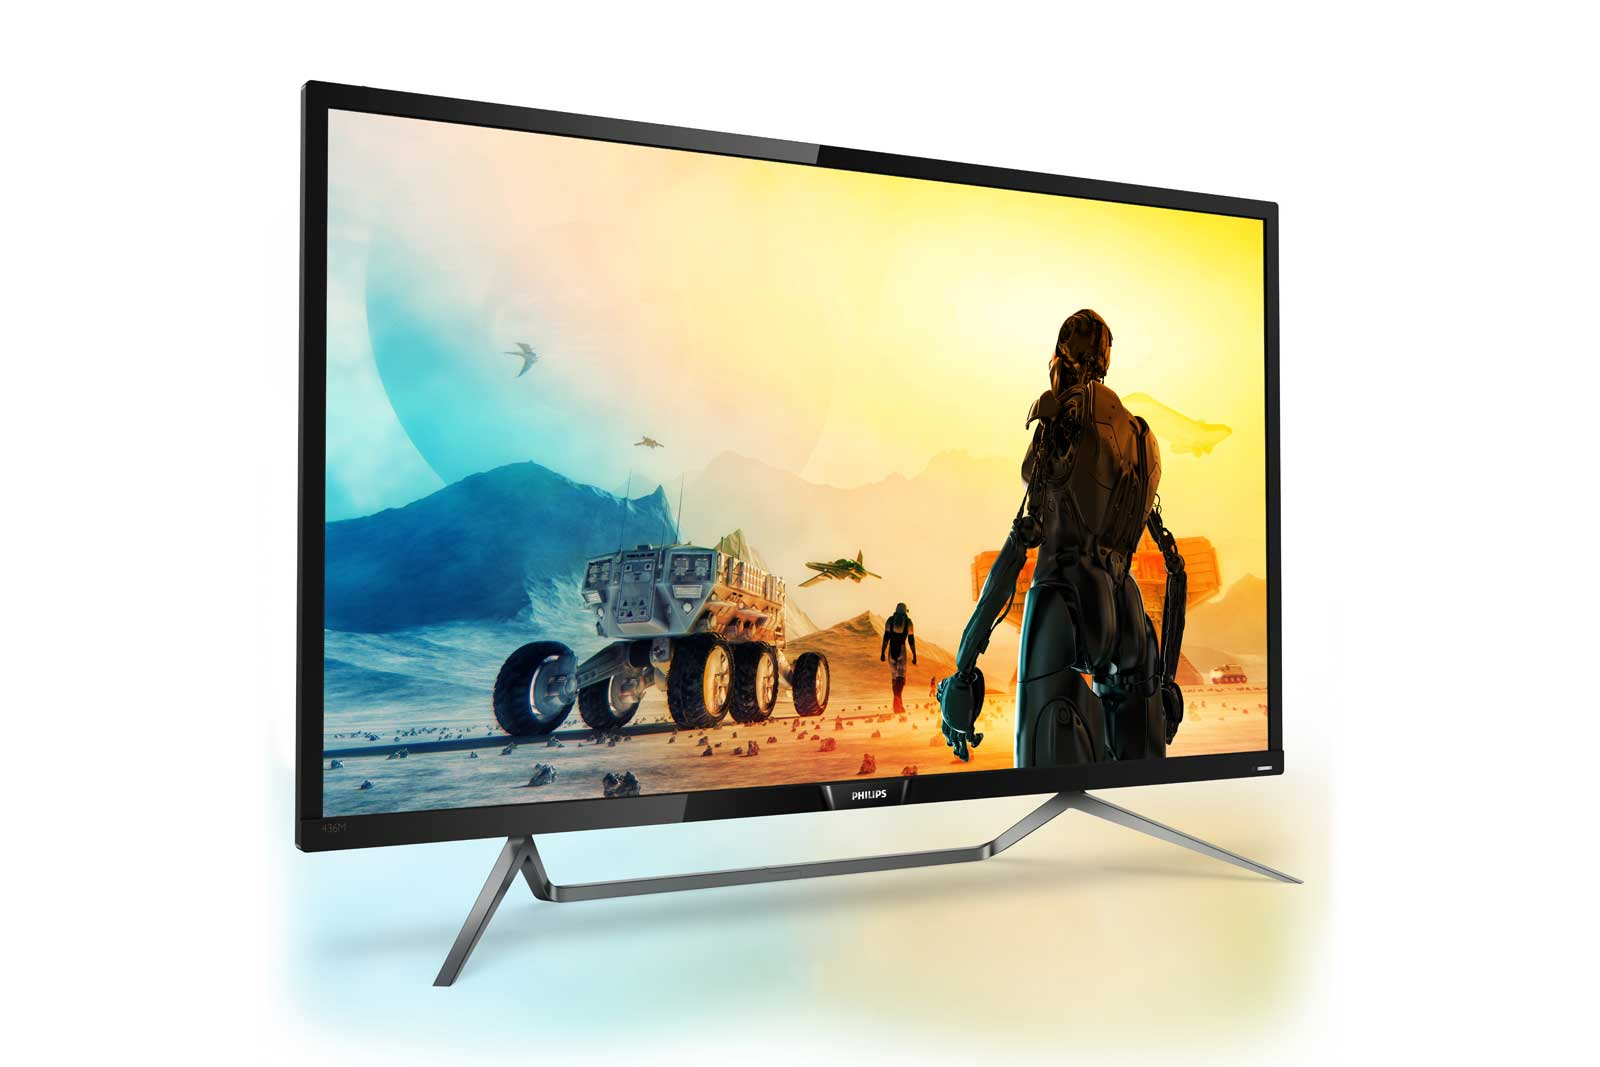 Philips' extra-bright 4K HDR monitor is now available for $1,000